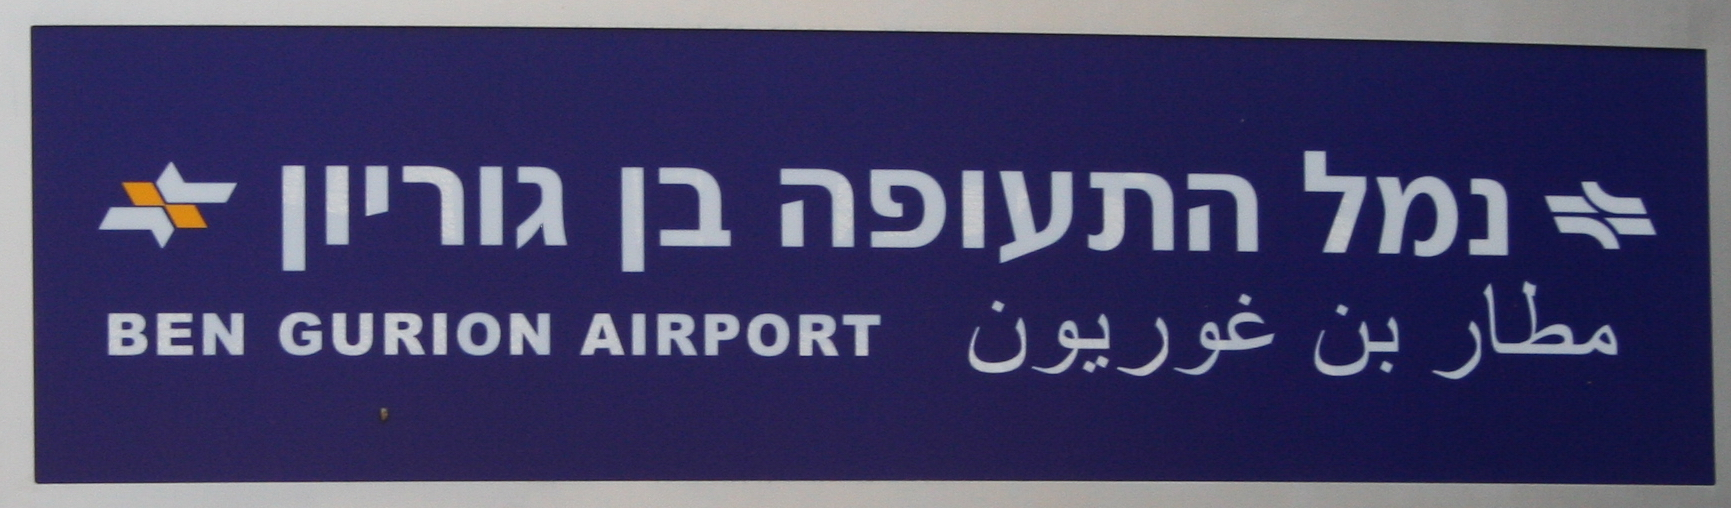 Ben_Gurion_Airport_Train_Station_sign.jpg